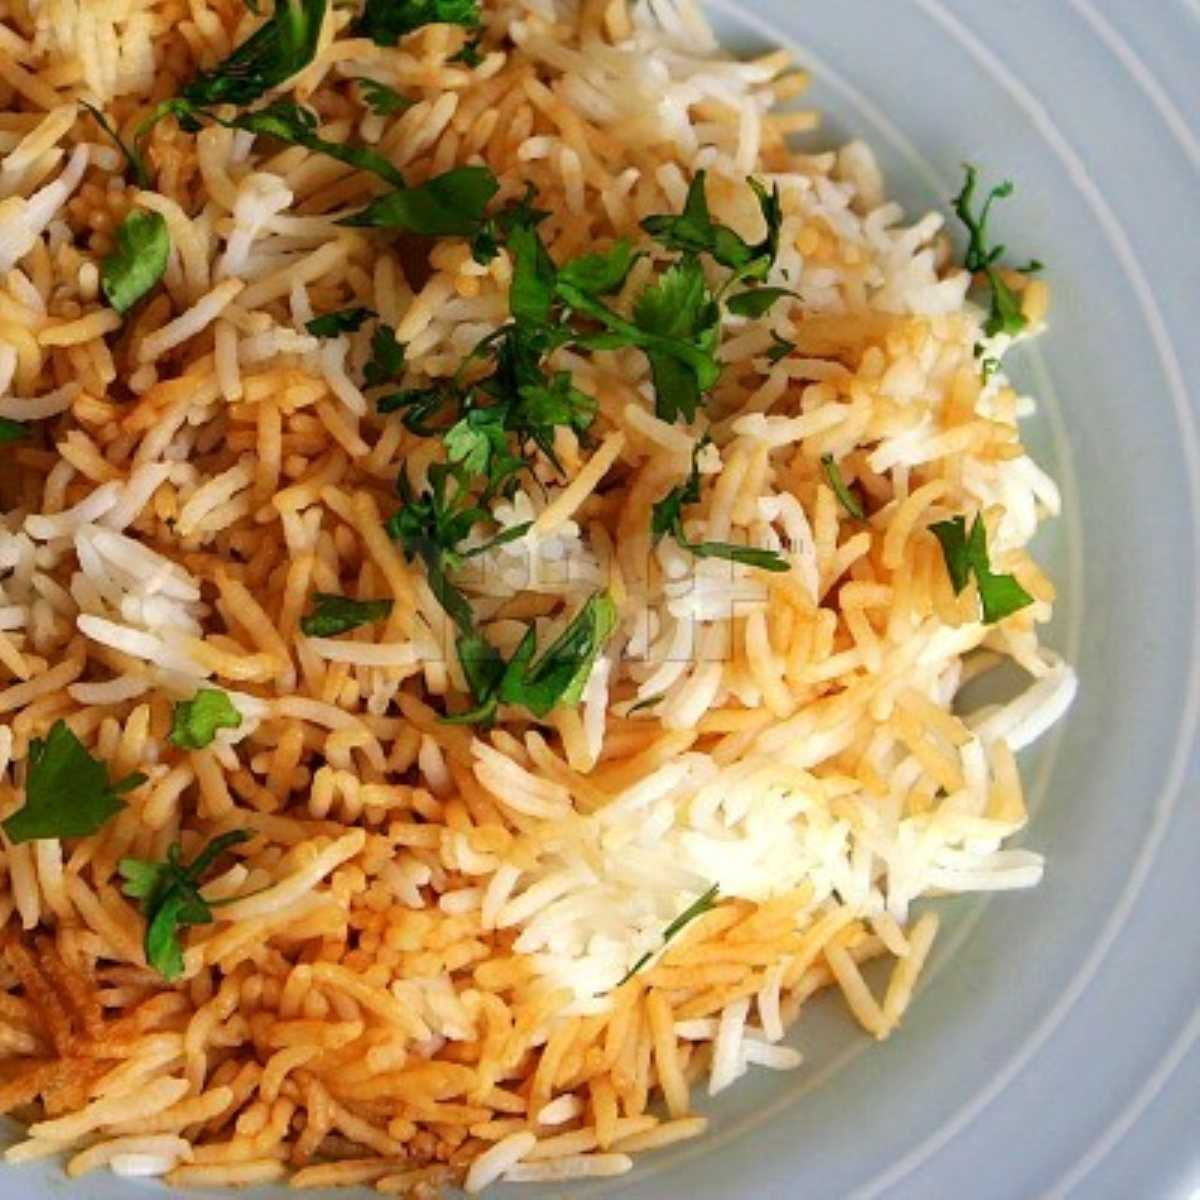 The pulao is one of the most popular dishes here.